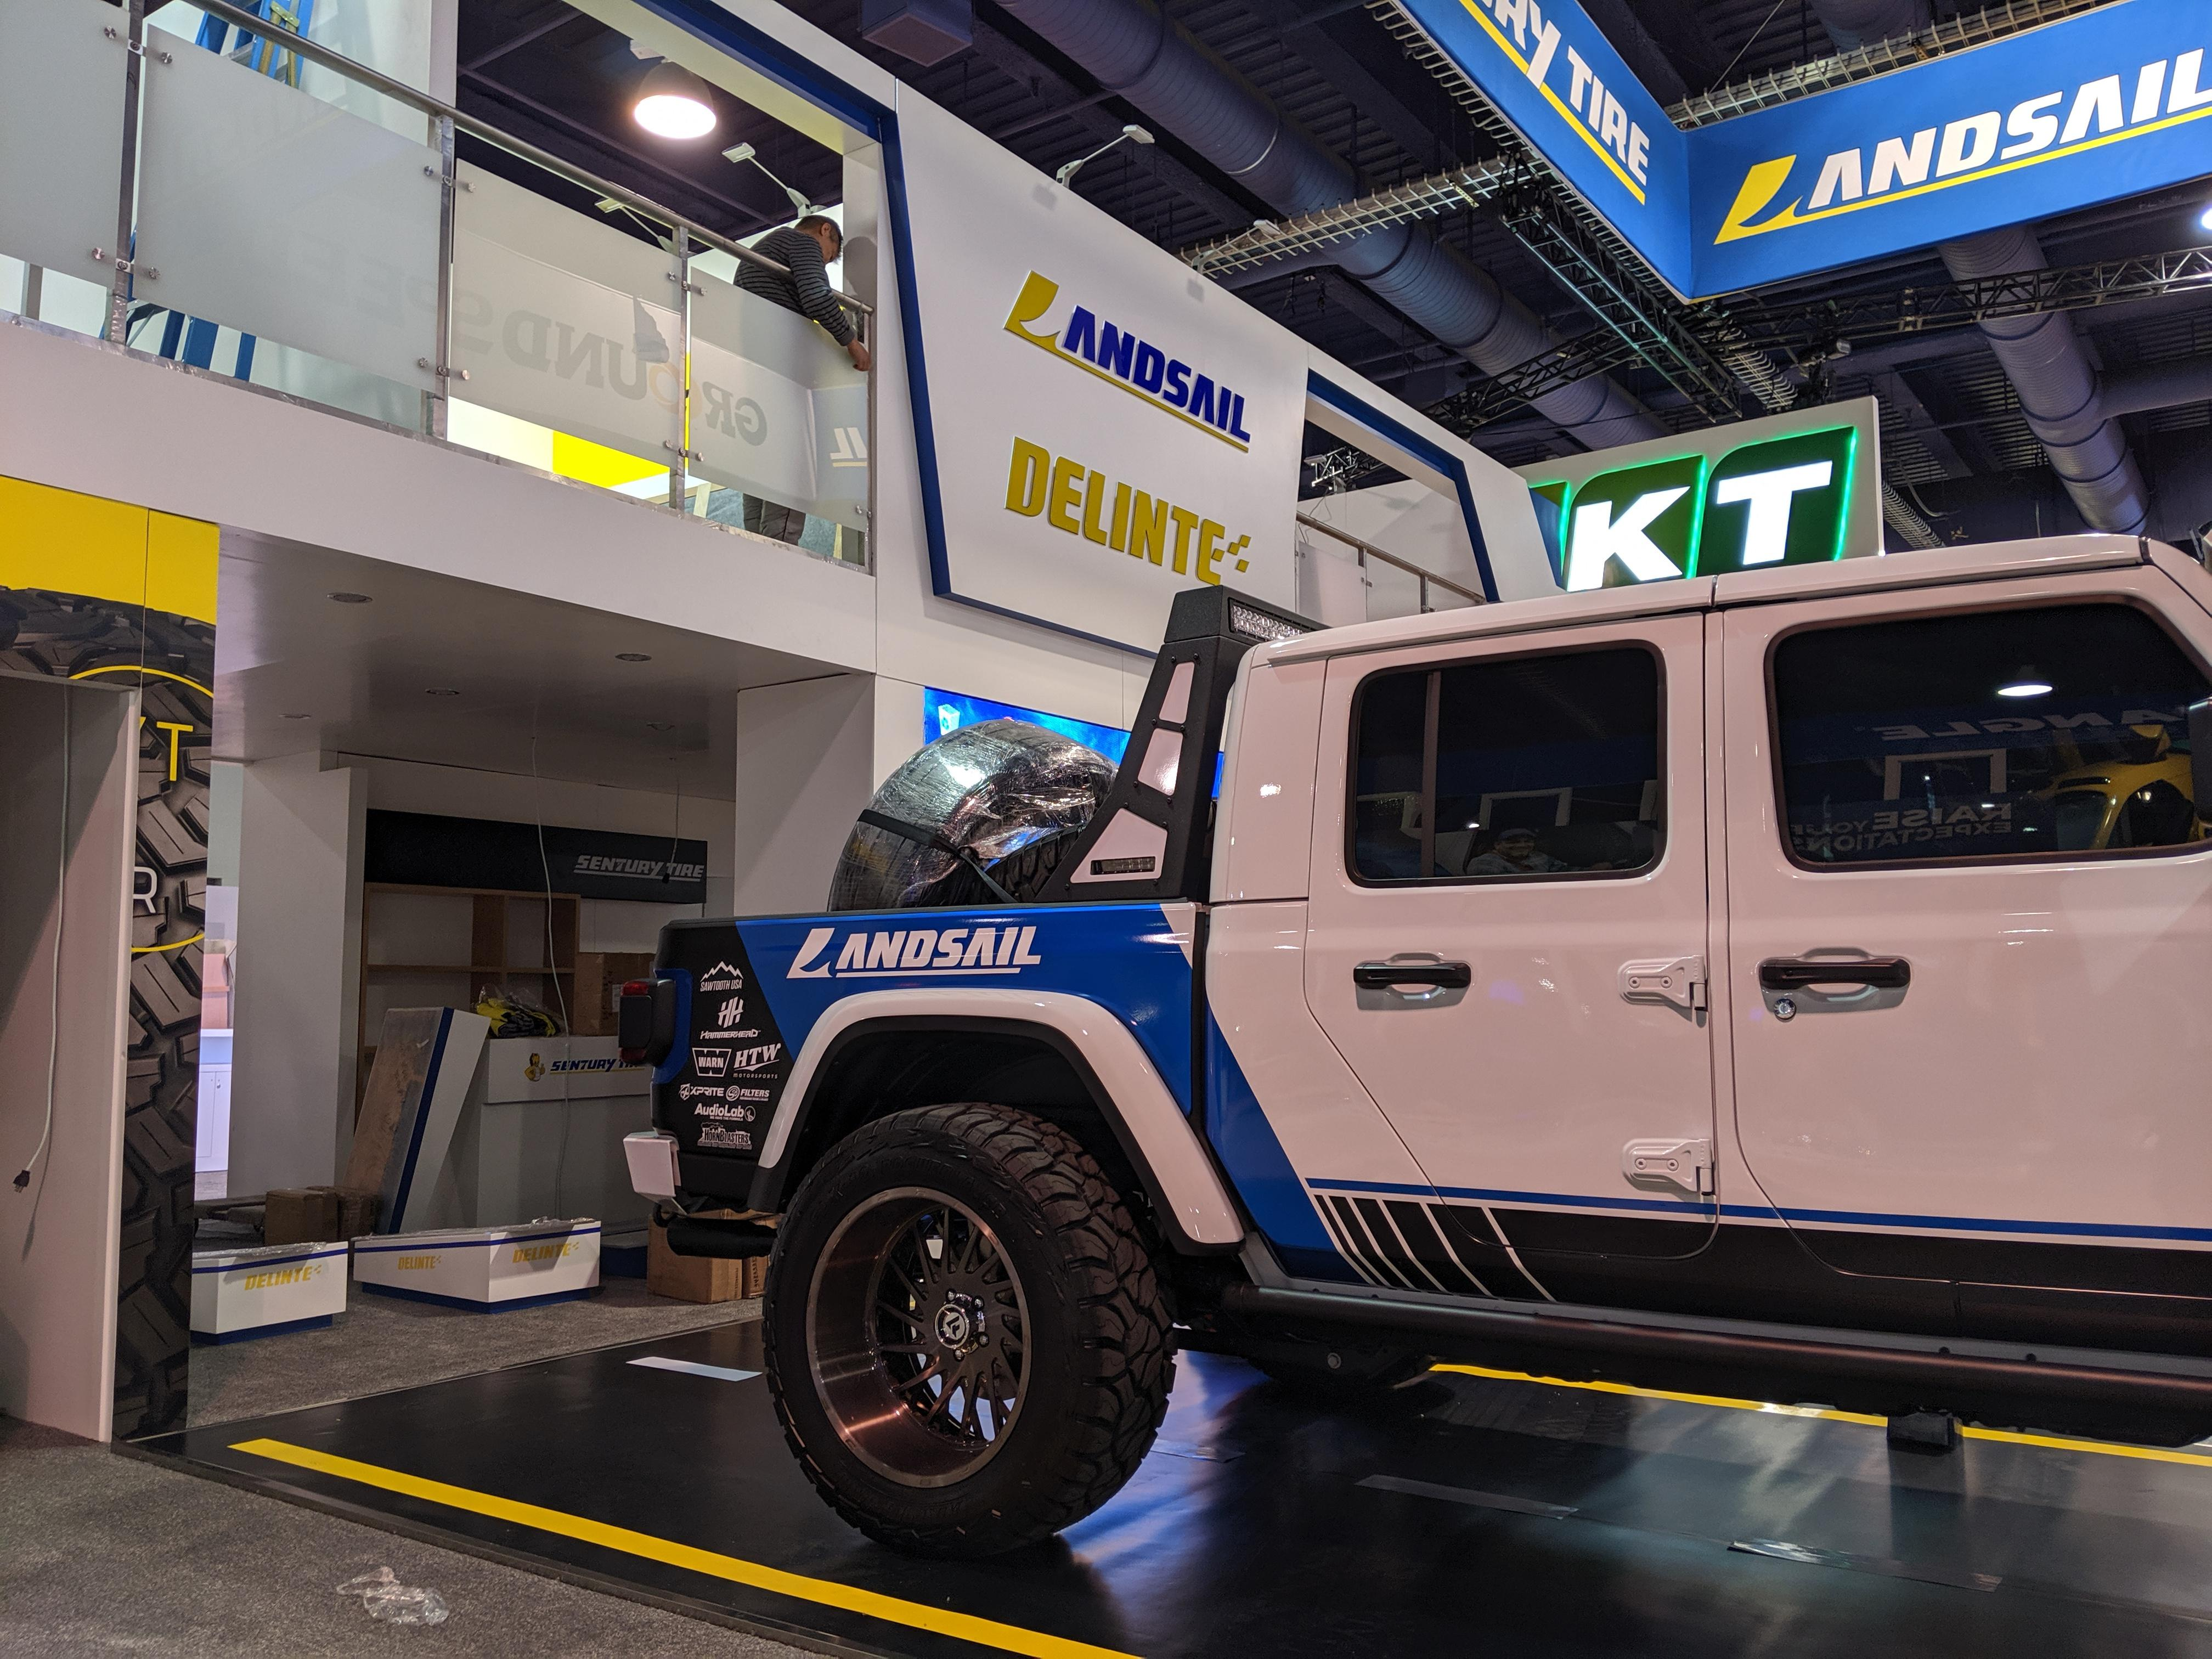 Blog 2: Early Activity on the GTE Trade Show Floor